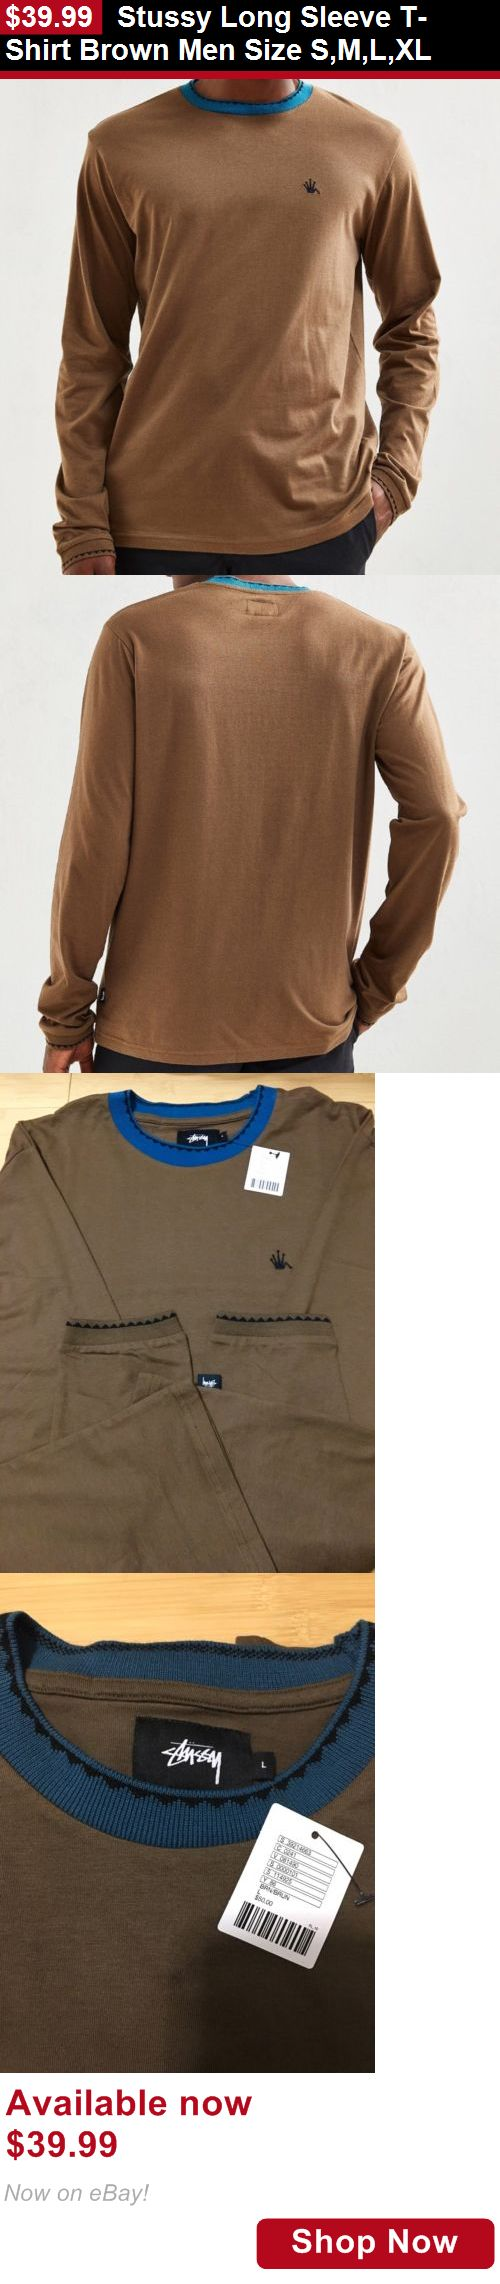 Men clothing: Stussy Long Sleeve T-Shirt Brown Men Size S,M,L,Xl BUY IT NOW ONLY: $39.99